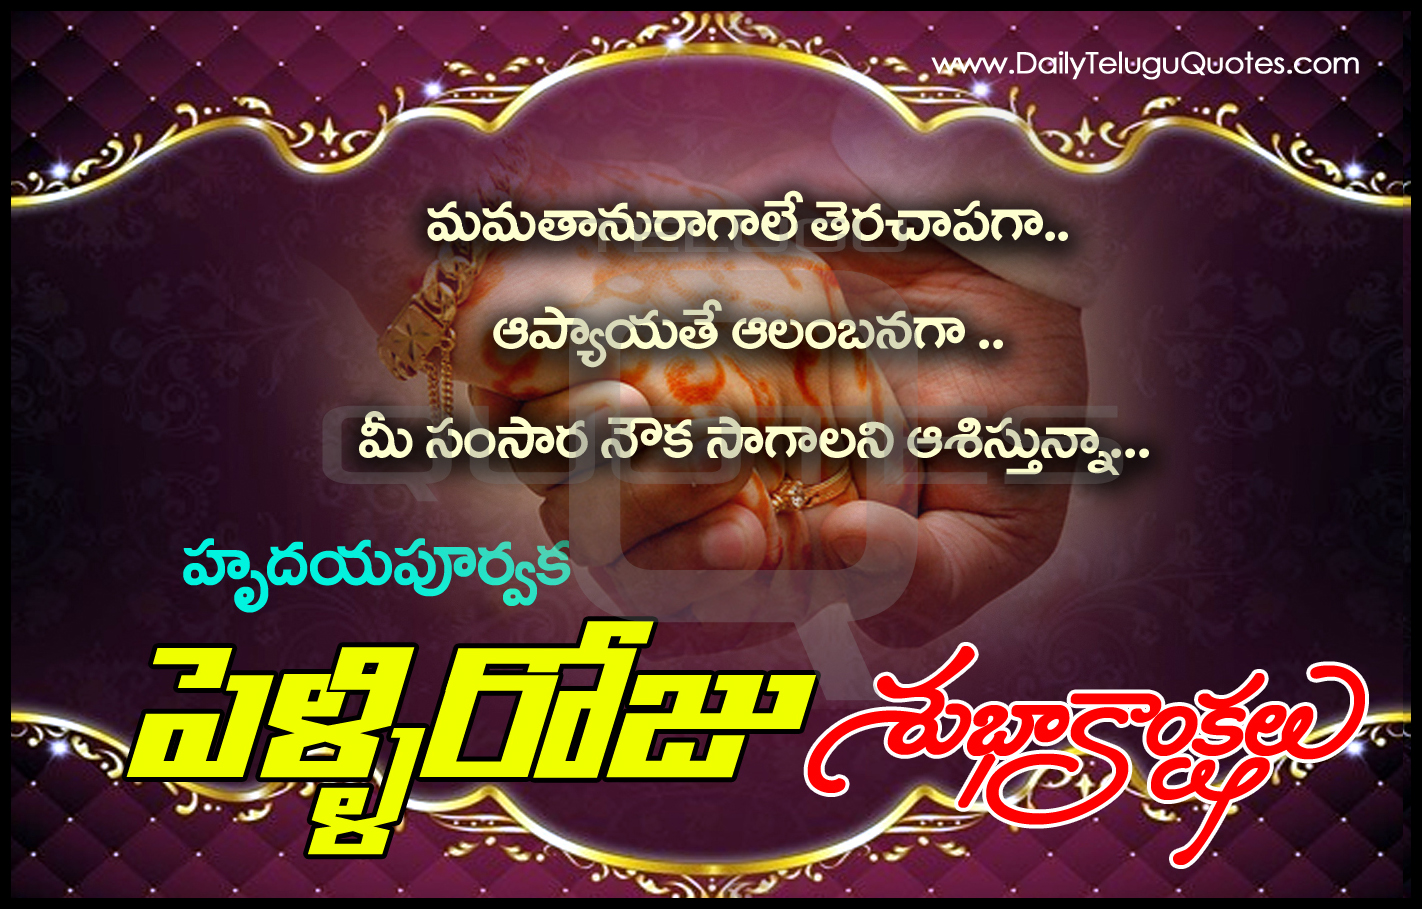 Telugu Quotes On Happy Married Life Quotations And Wishes In Telugu